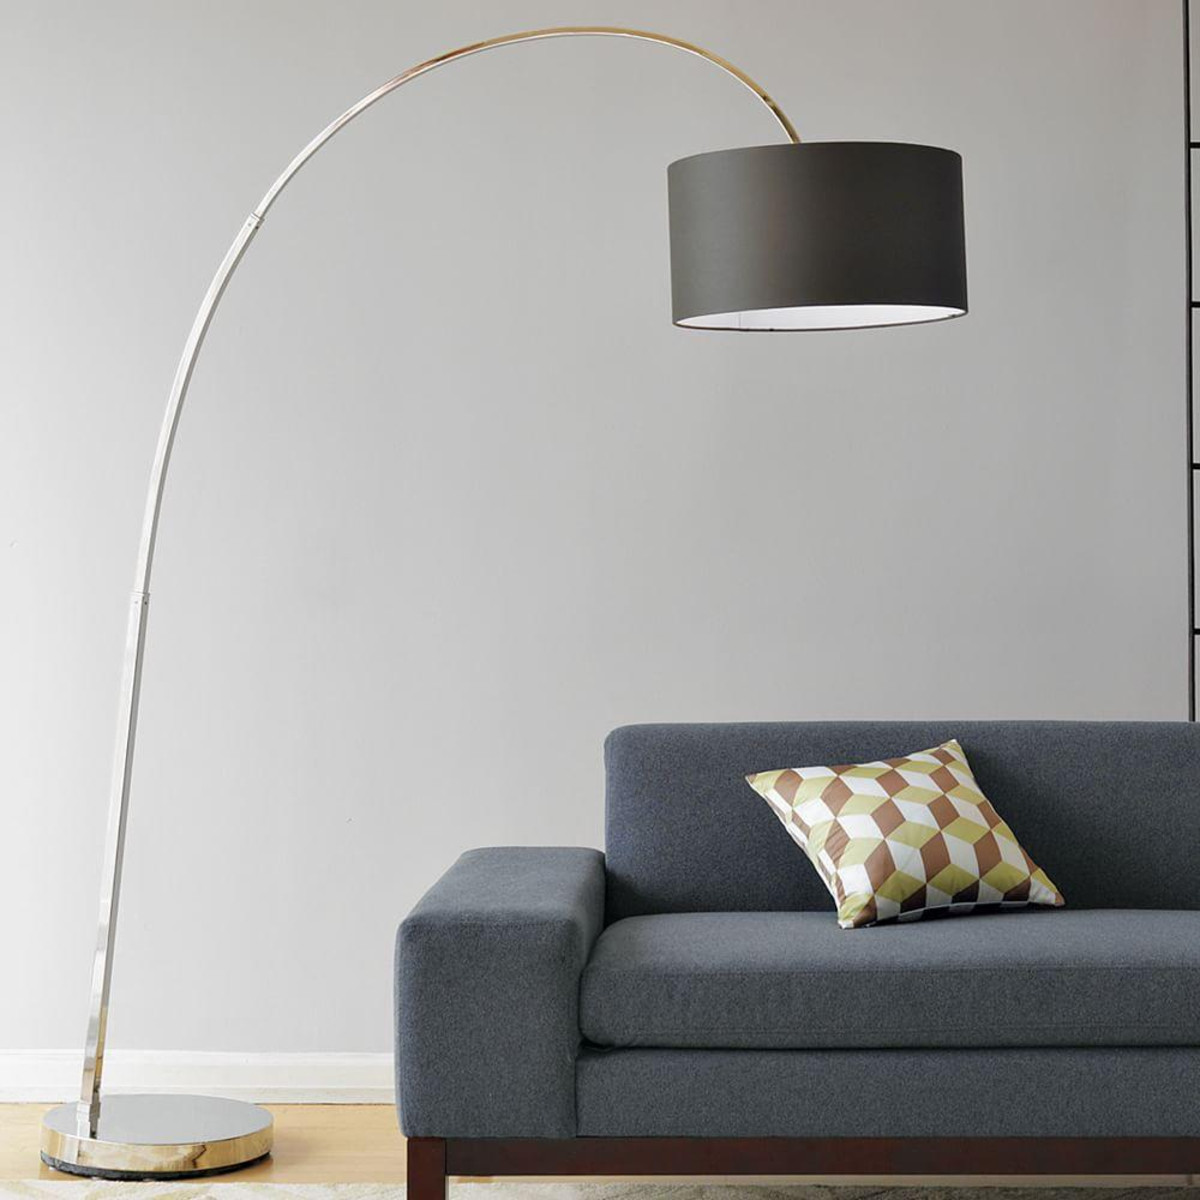 West Elm Lamps: SPICE UP YOUR SPACE WITH West Elm Floor Lamps